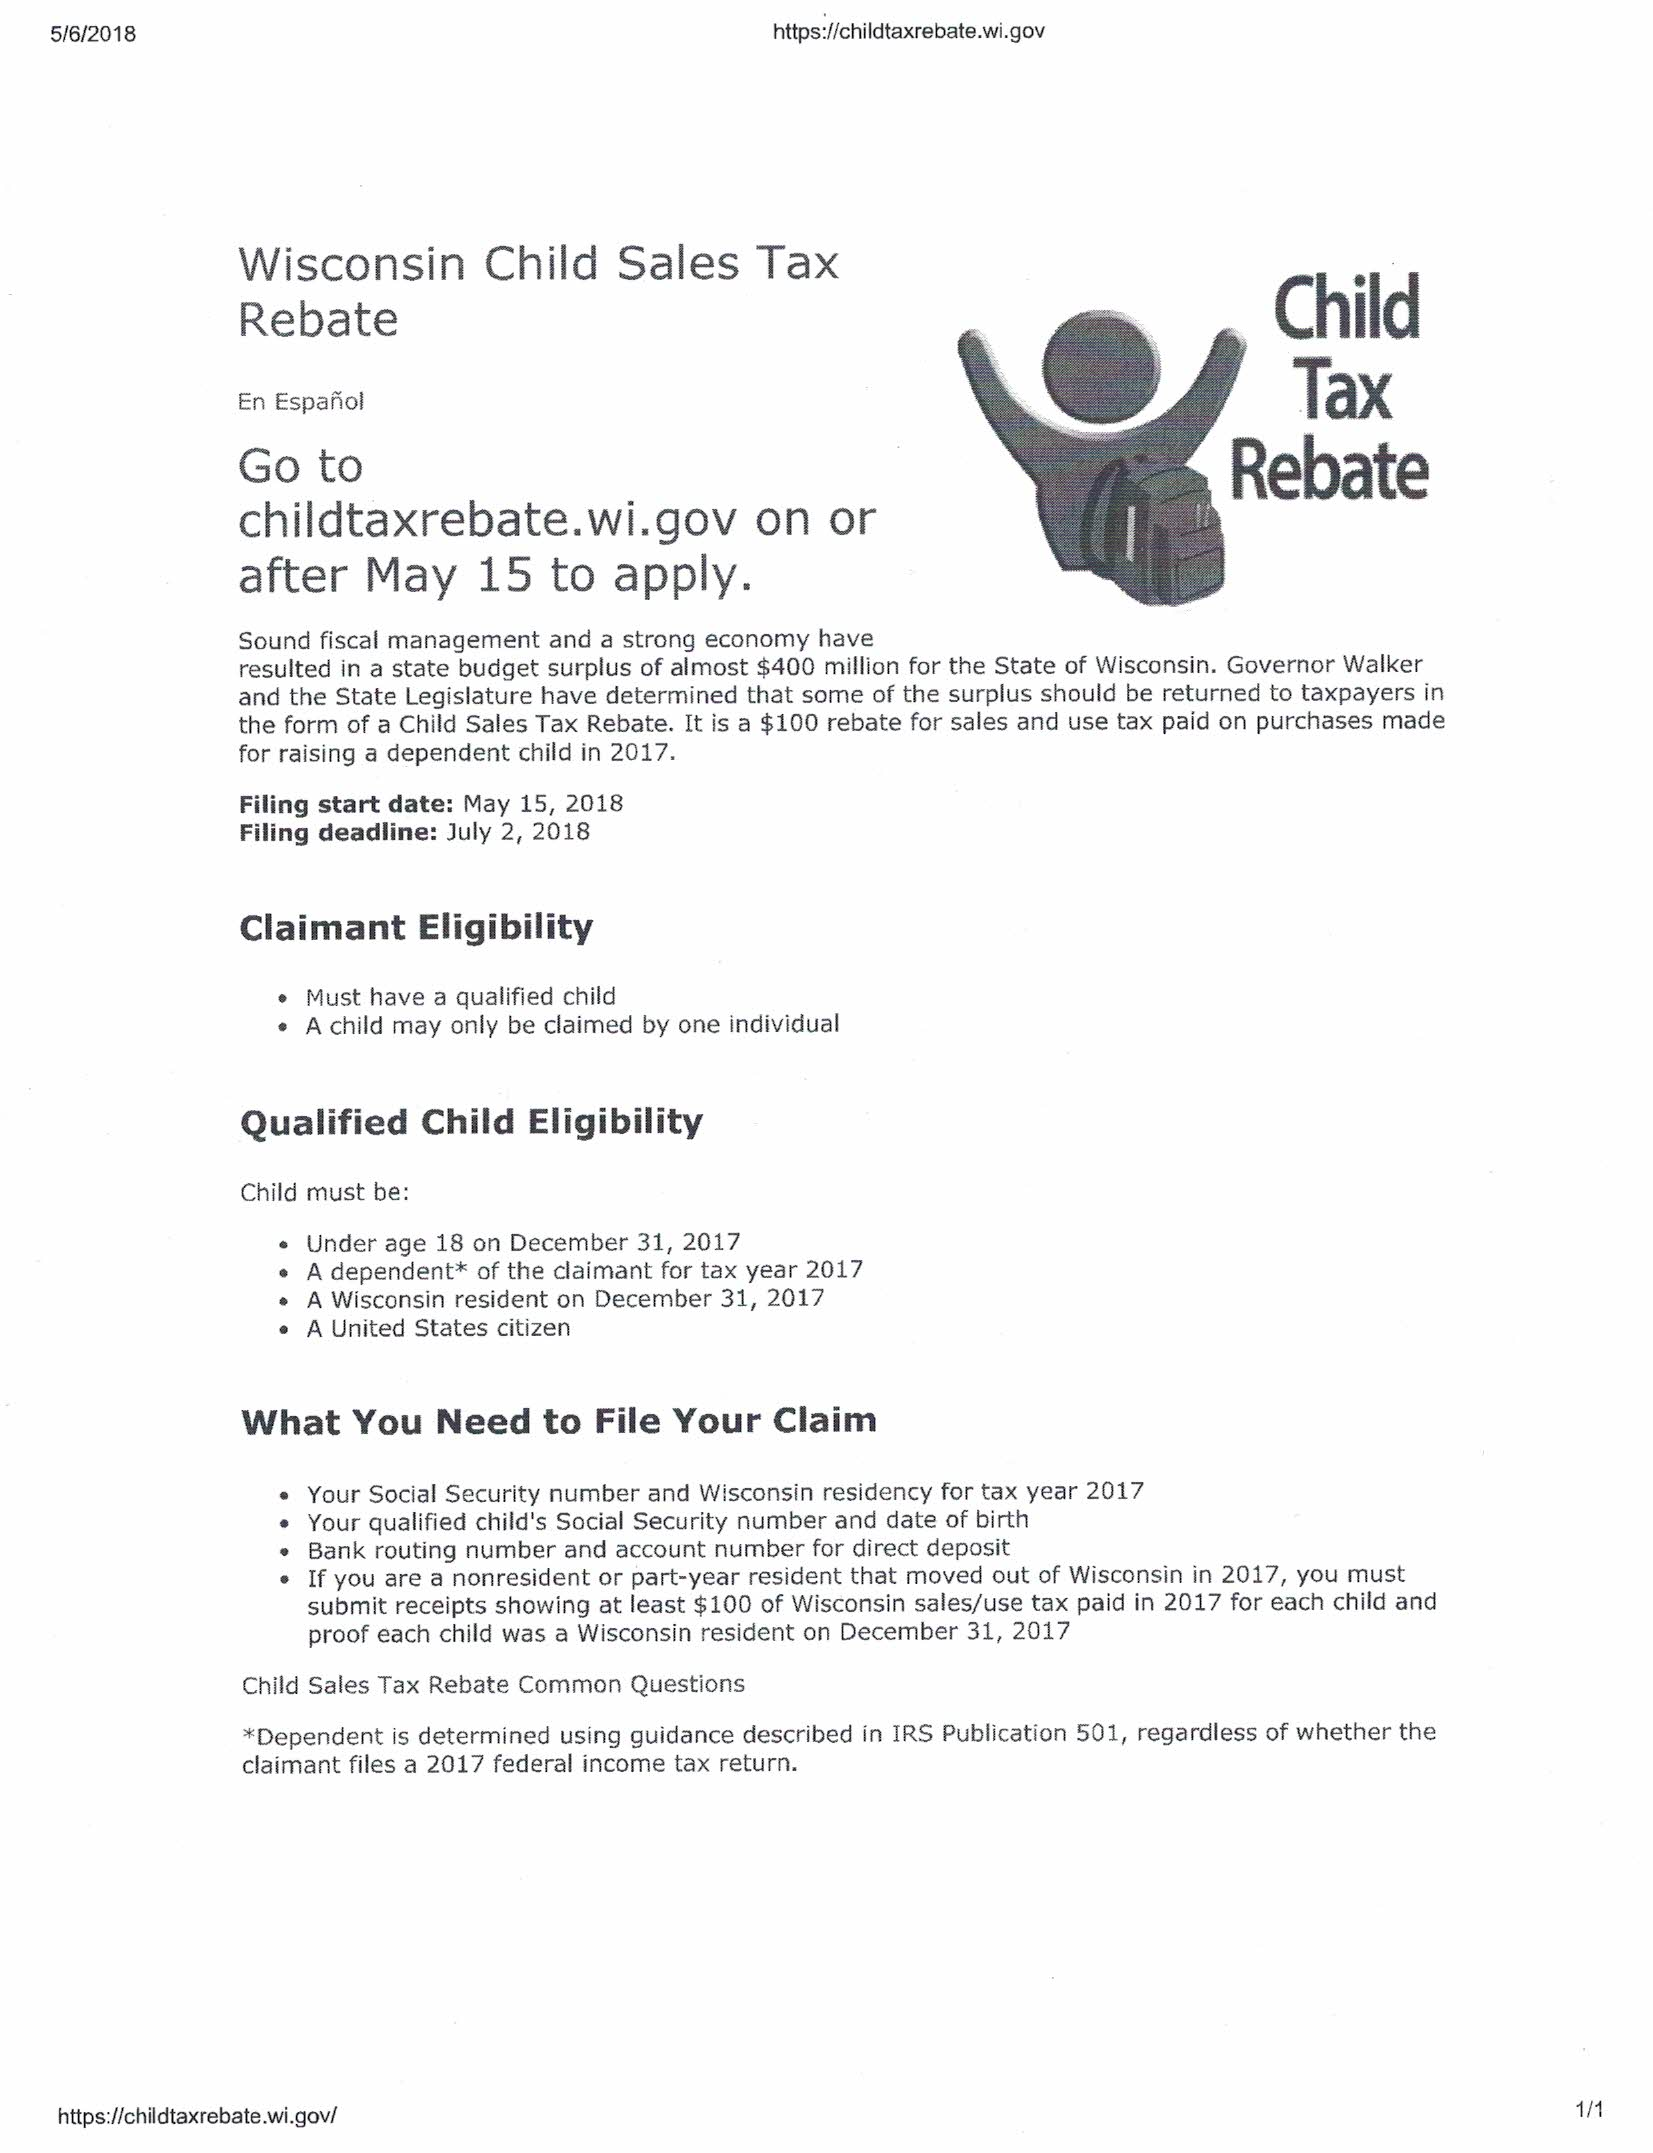 Wisconsin Child Tax Form